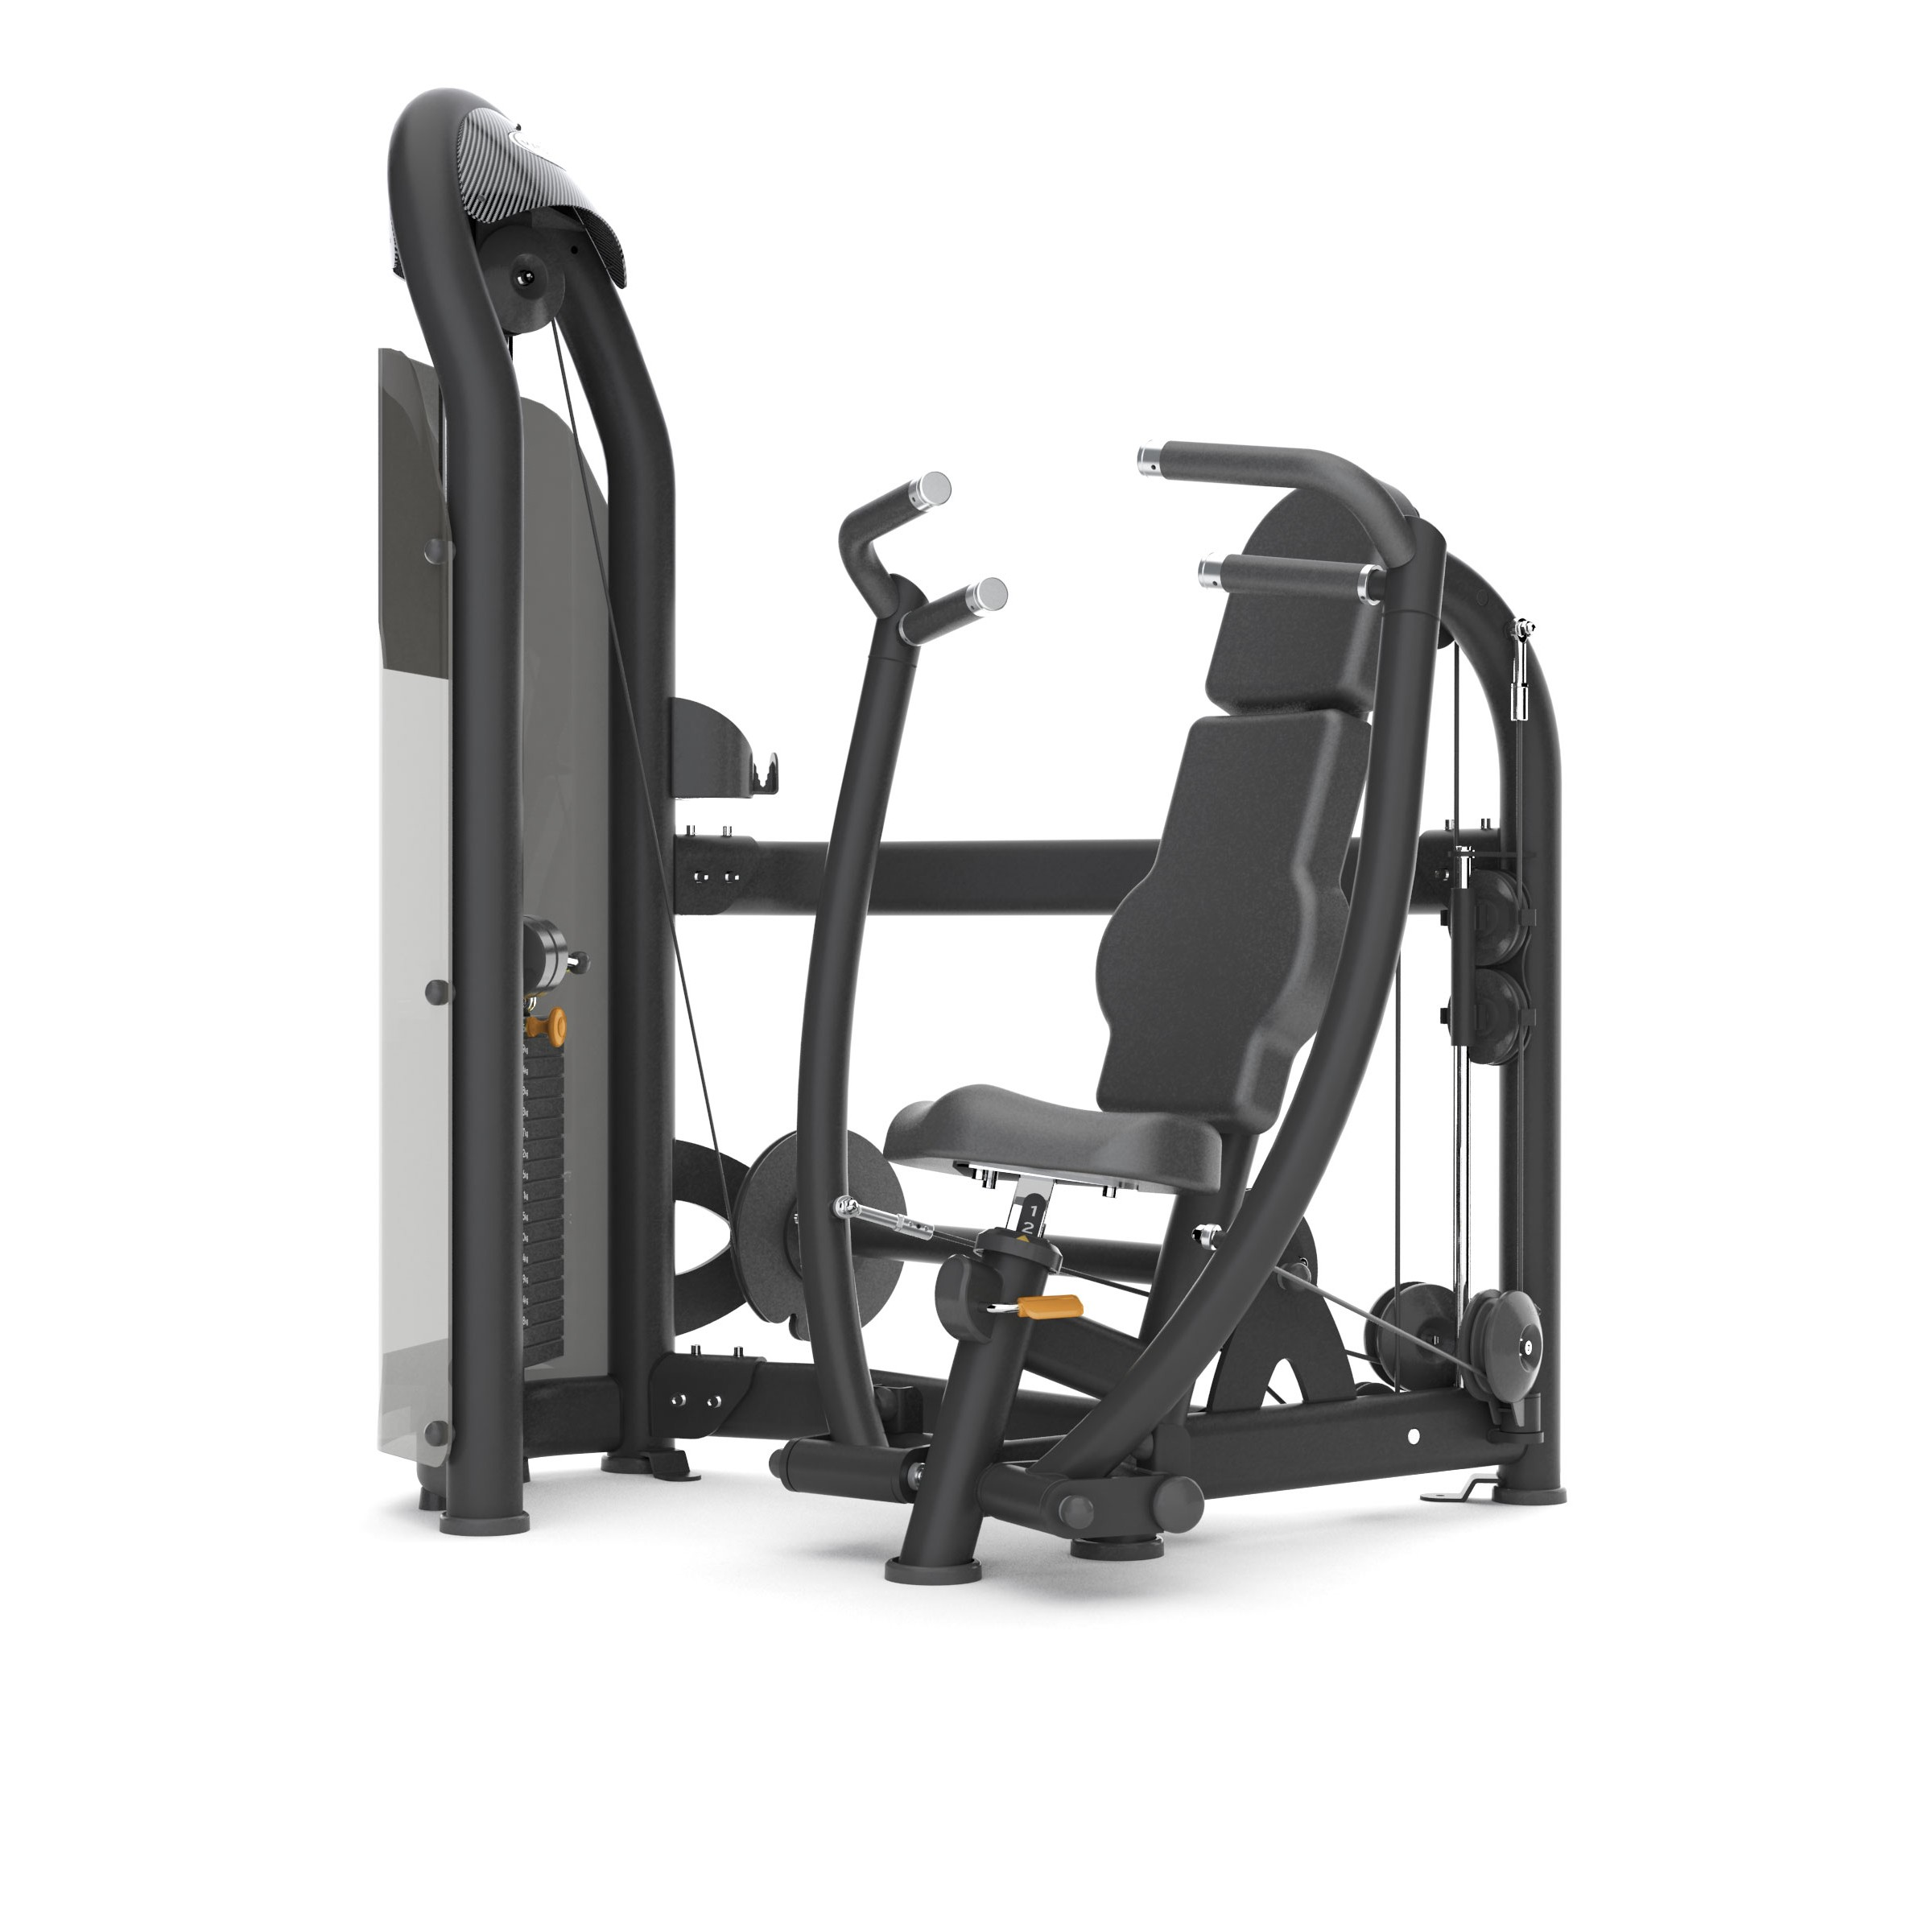 MX16_AURA G3-S13 converging chest press_Blk Matte_hero